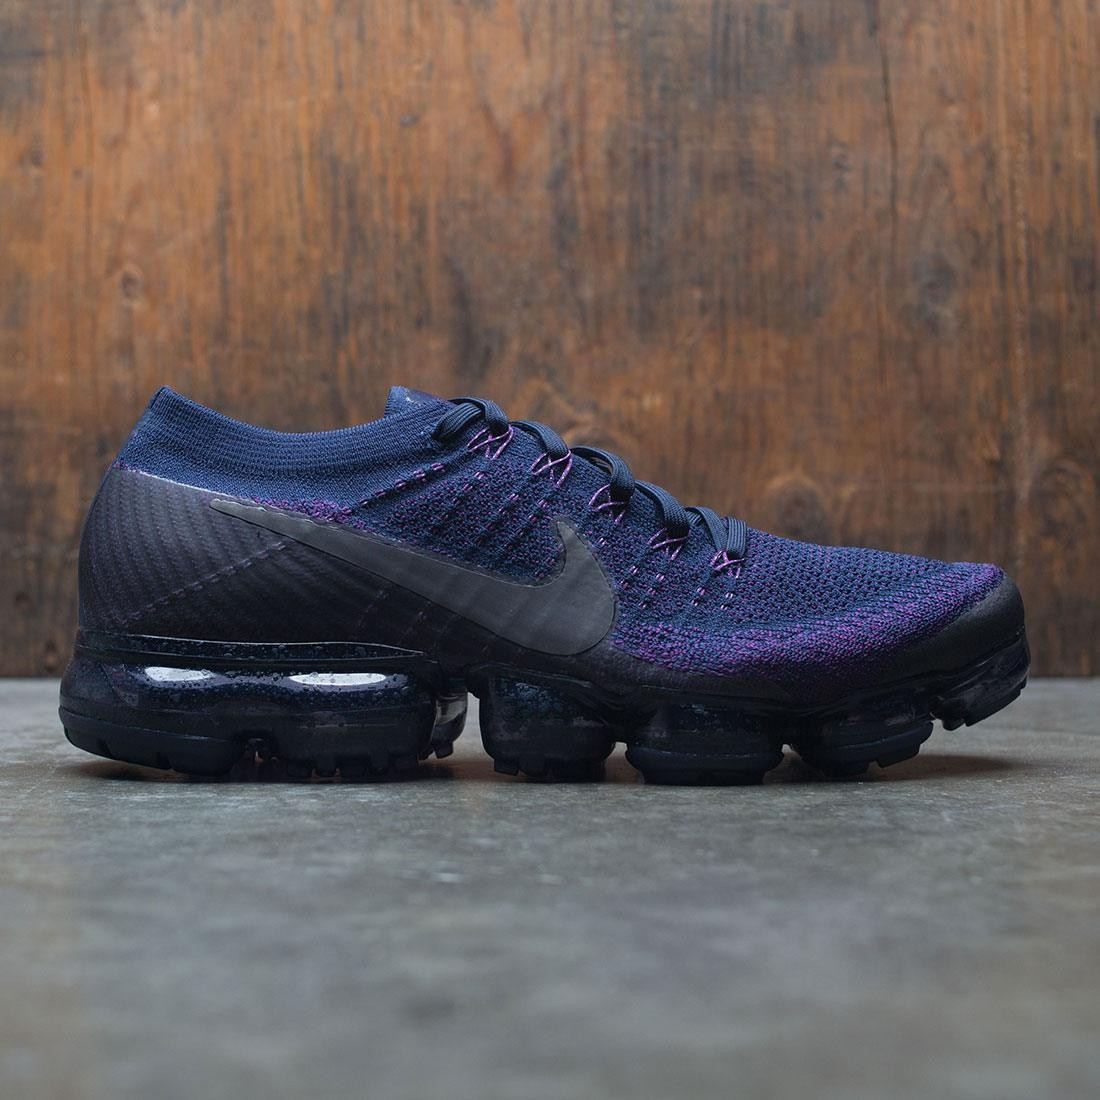 9207e215af93 nike men nikelab air vapormax flyknit running navy dark grey night purple